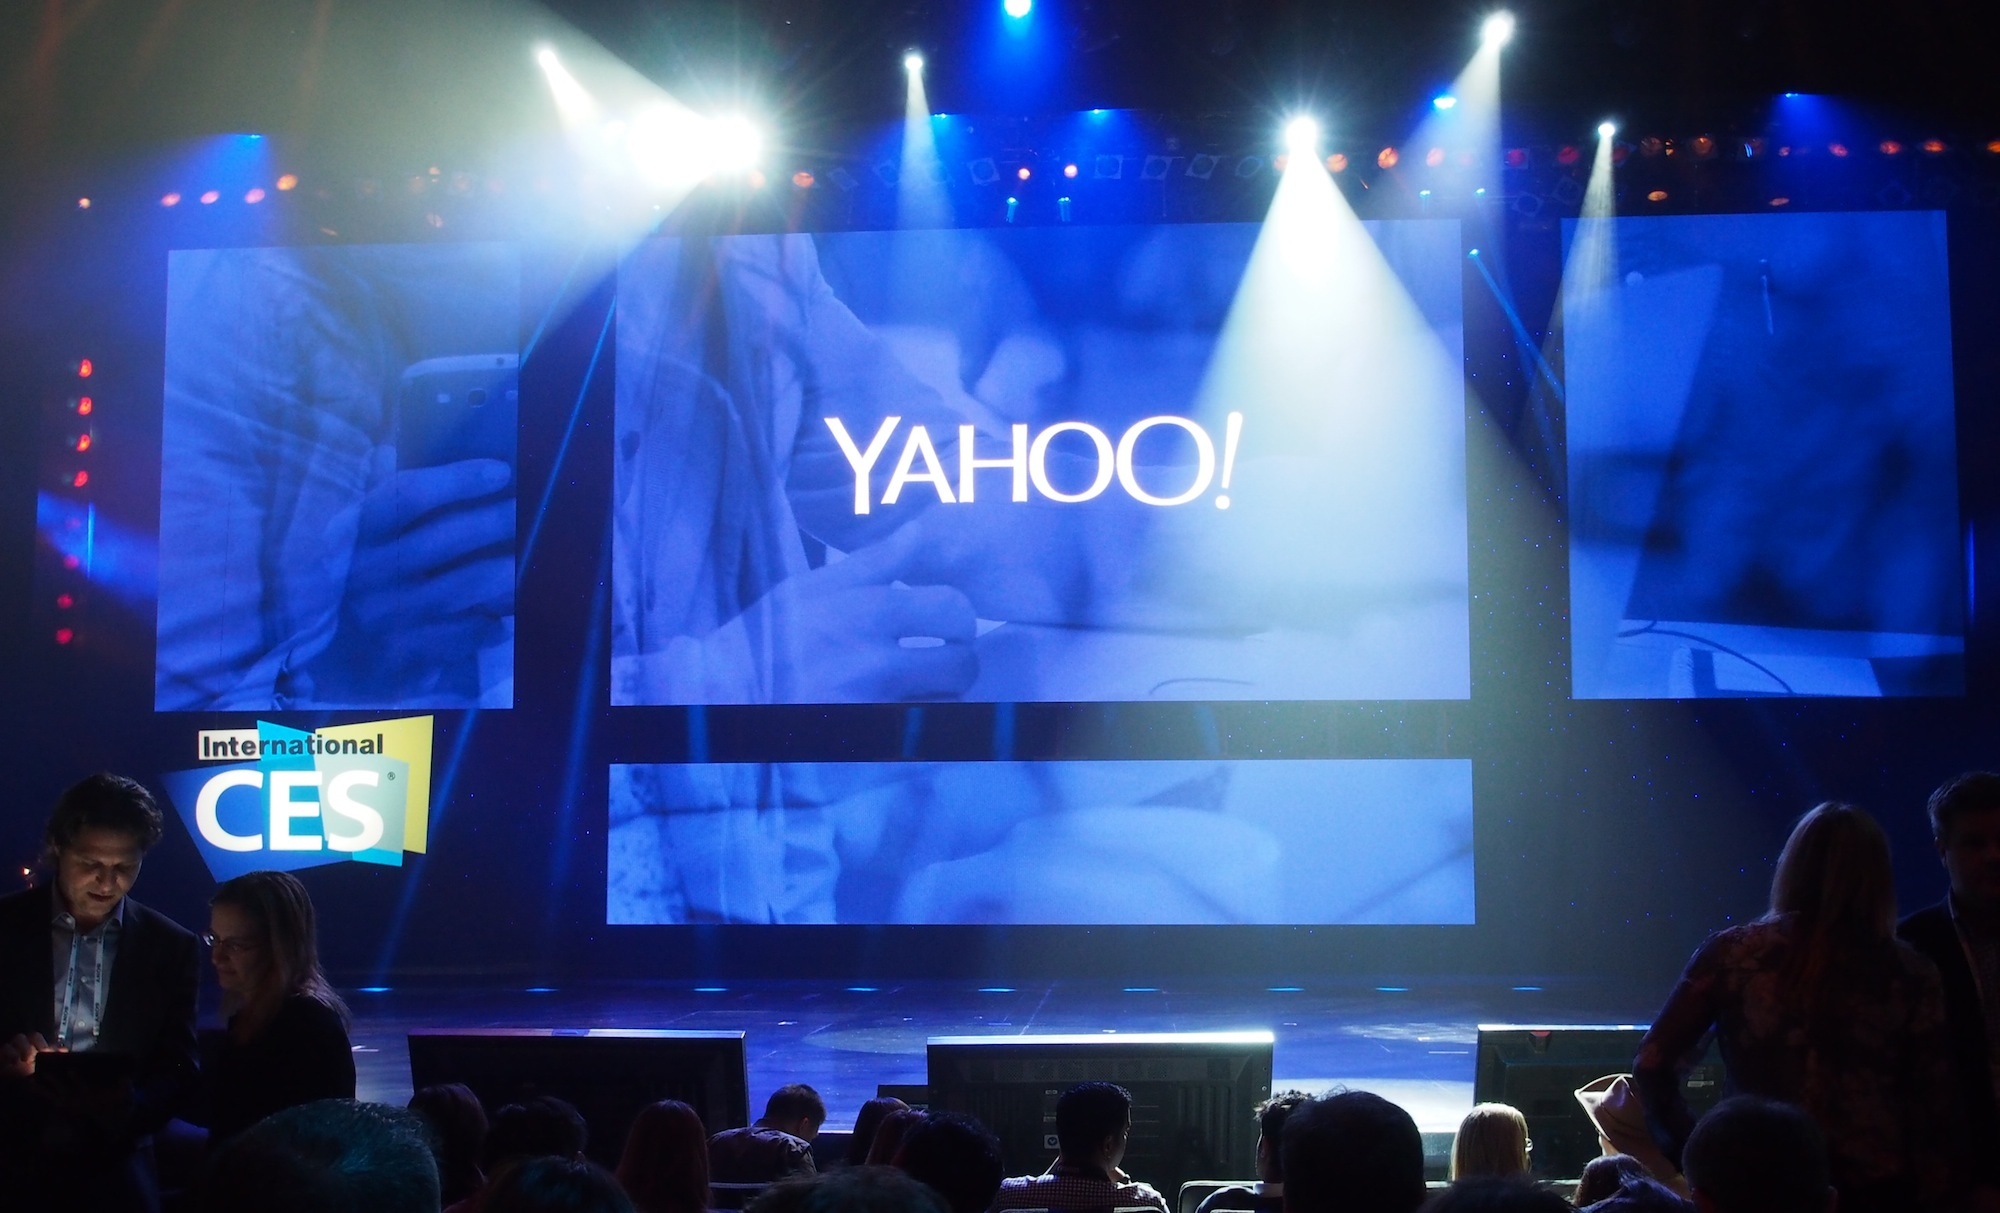 Marissa Mayer's star-studded CES keynote refocuses Yahoo as a media company